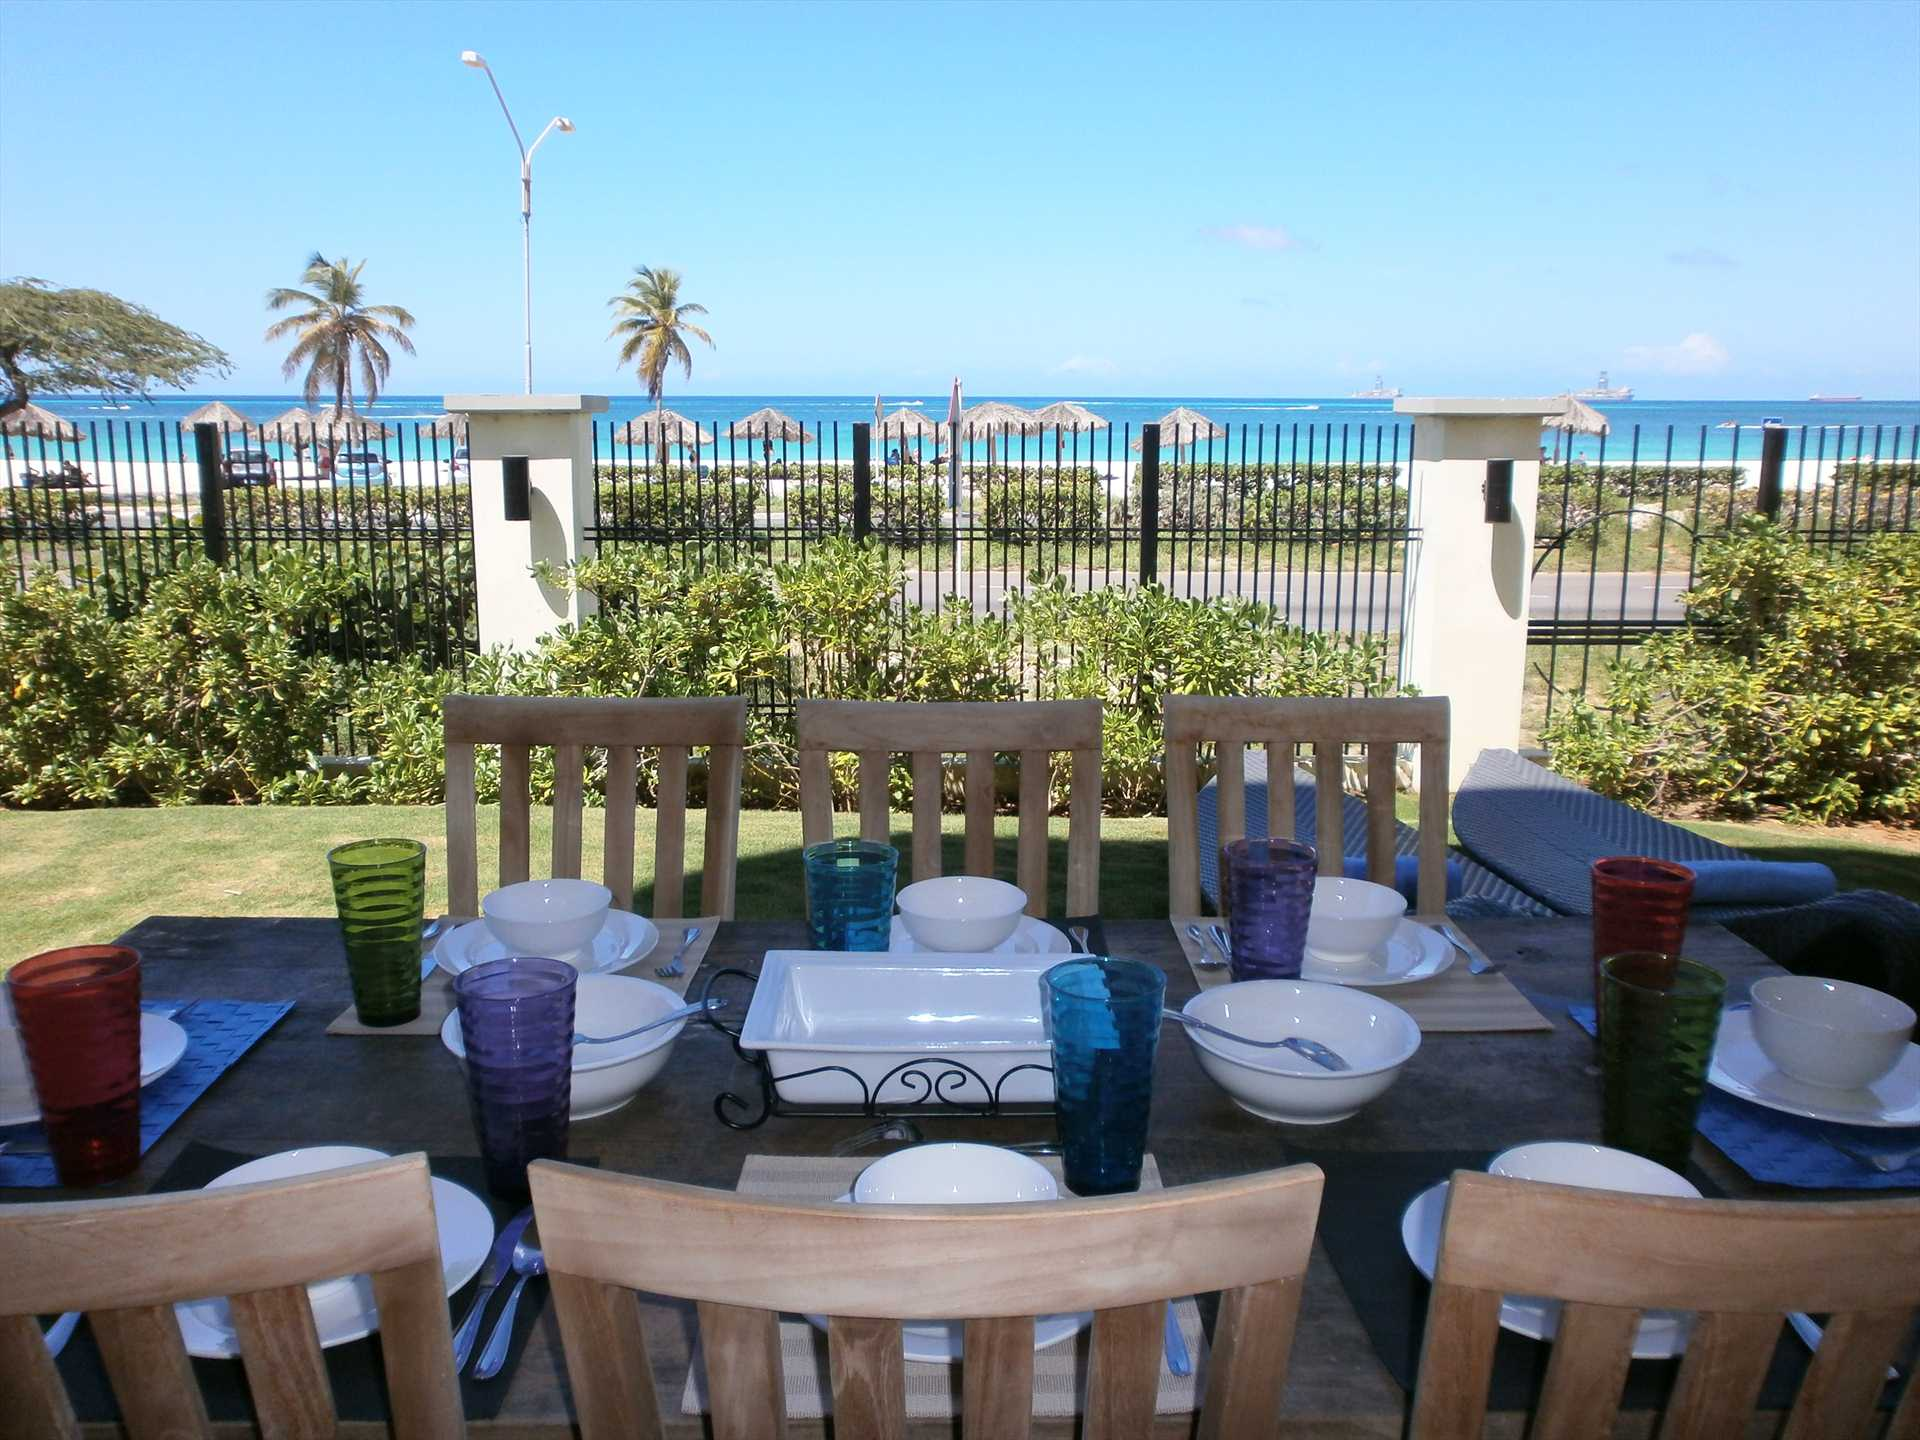 Enjoy the ocean view with any meal on your private patio